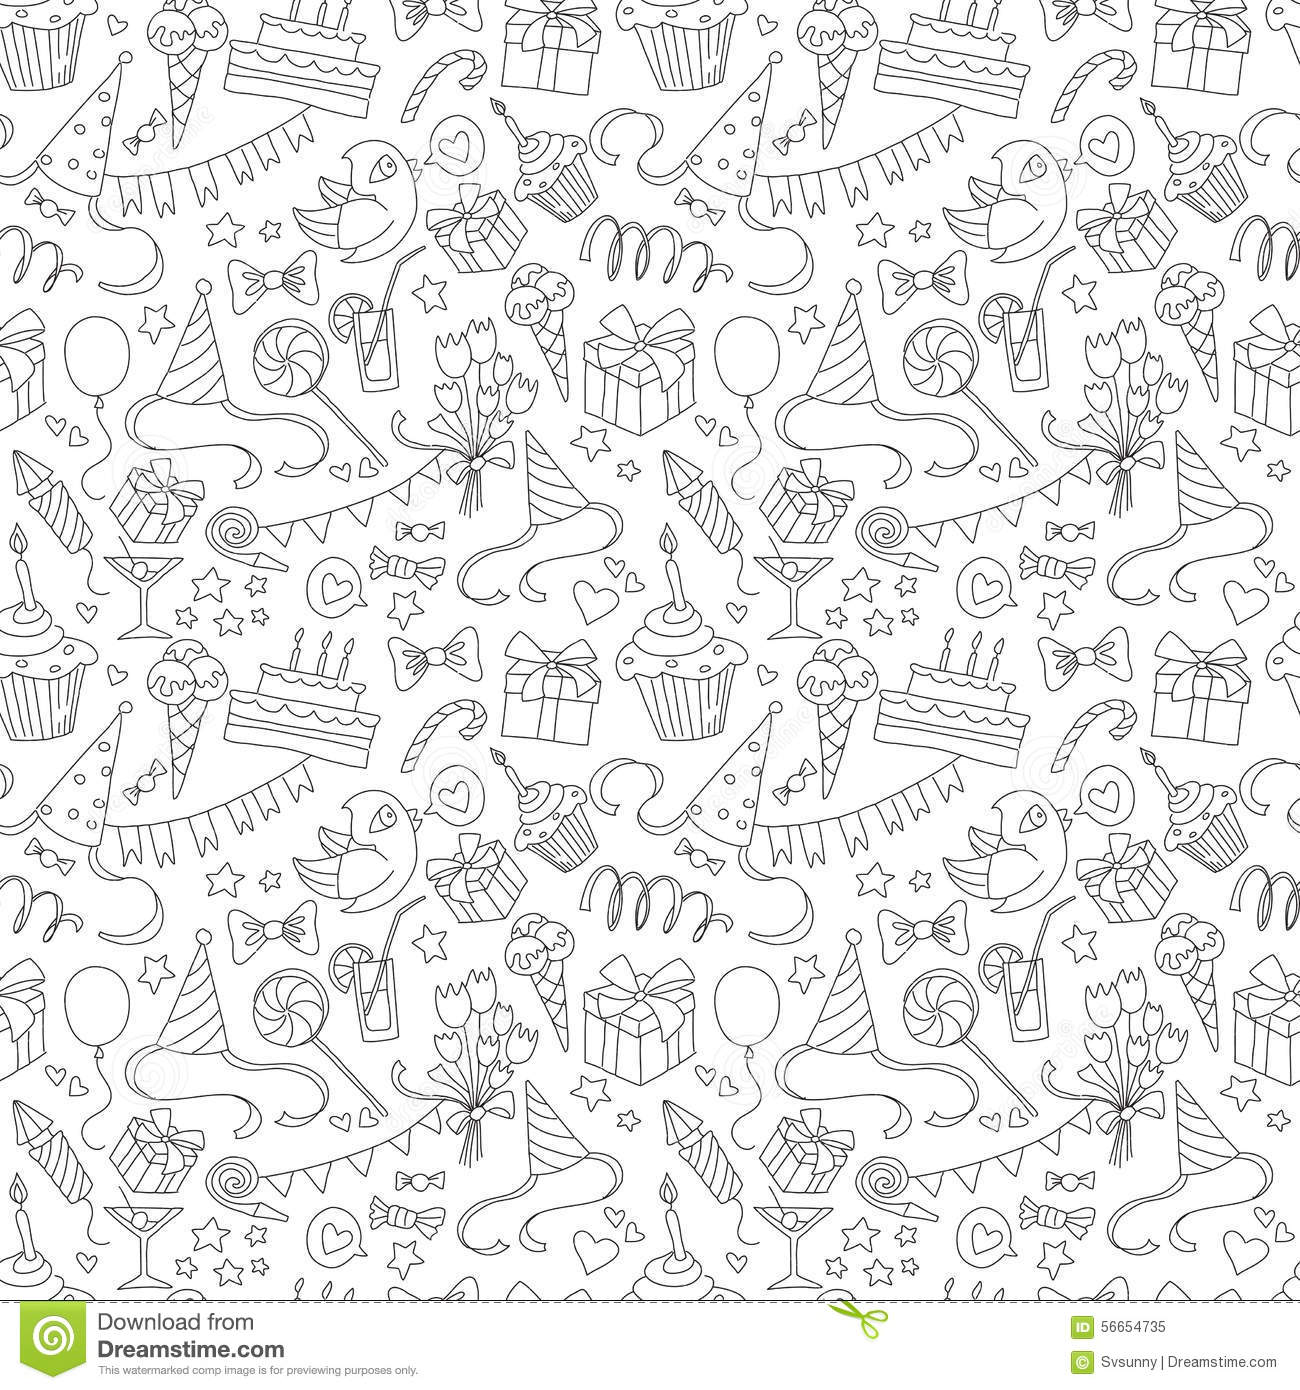 Happy Birthday Party Doodle Black And White Seamless